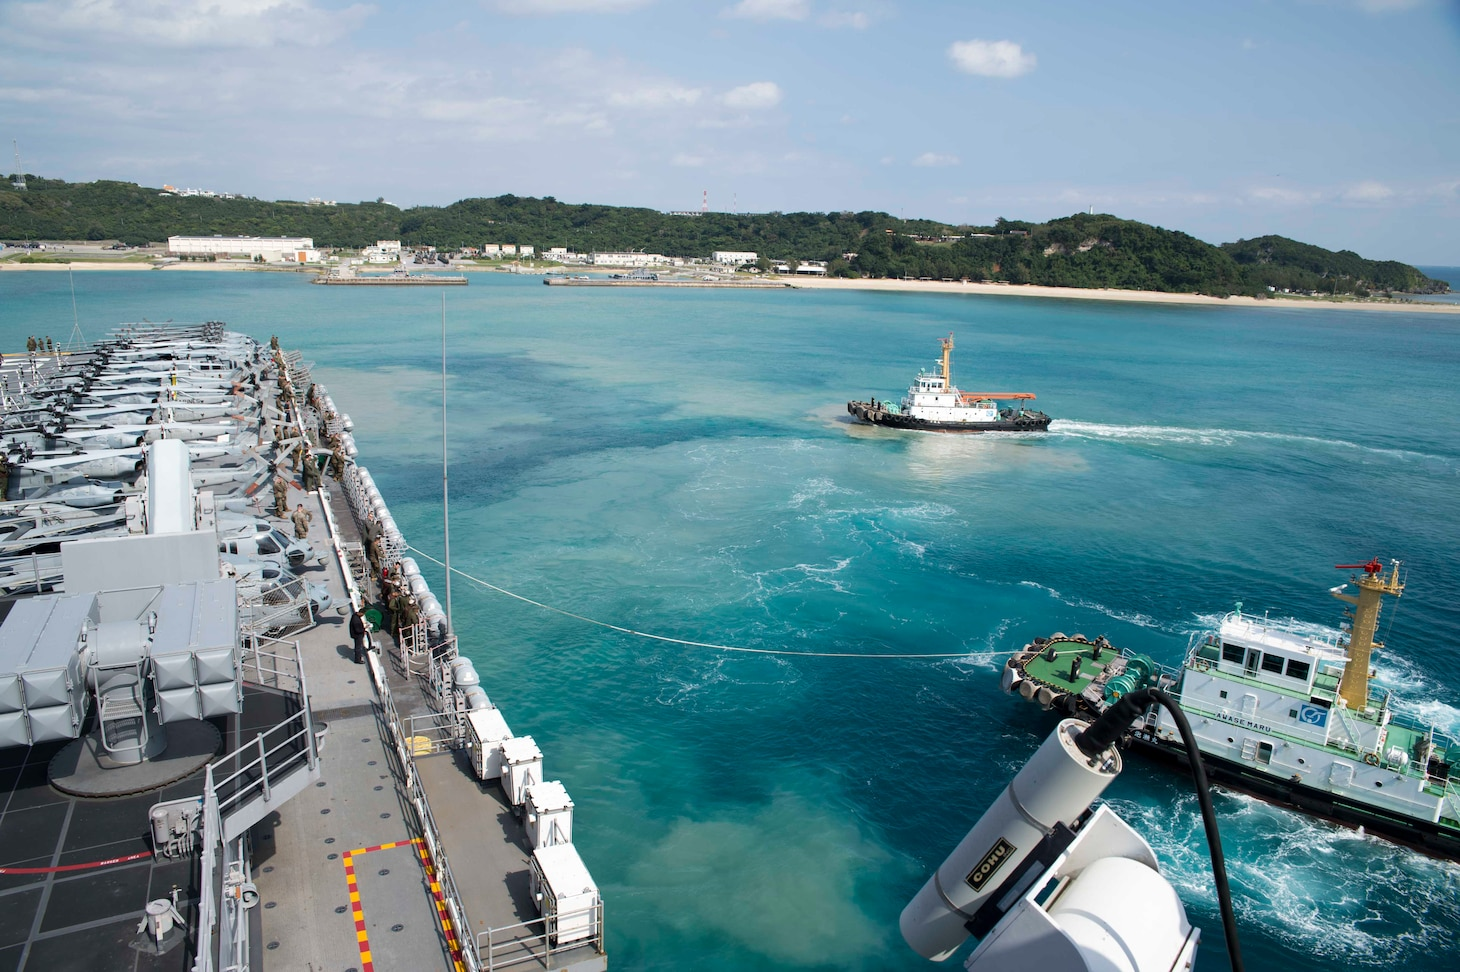 180202-N-XK809-013 WHITE BEACH, Okinawa (Feb. 2, 2018) A tug boat guides the amphibious assault ship USS Bonhomme Richard (LHD 6) away from the pier during the ship's departure from White Beach Naval Facility, Okinawa. Bonhomme Richard is operating in the Indo-Asia-Pacific region as part of a regularly scheduled patrol and provides a rapid-response capability in the event of a regional contingency or natural disaster. (U.S. Navy photo by Mass Communication Specialist 2nd Class William Sykes/Released)